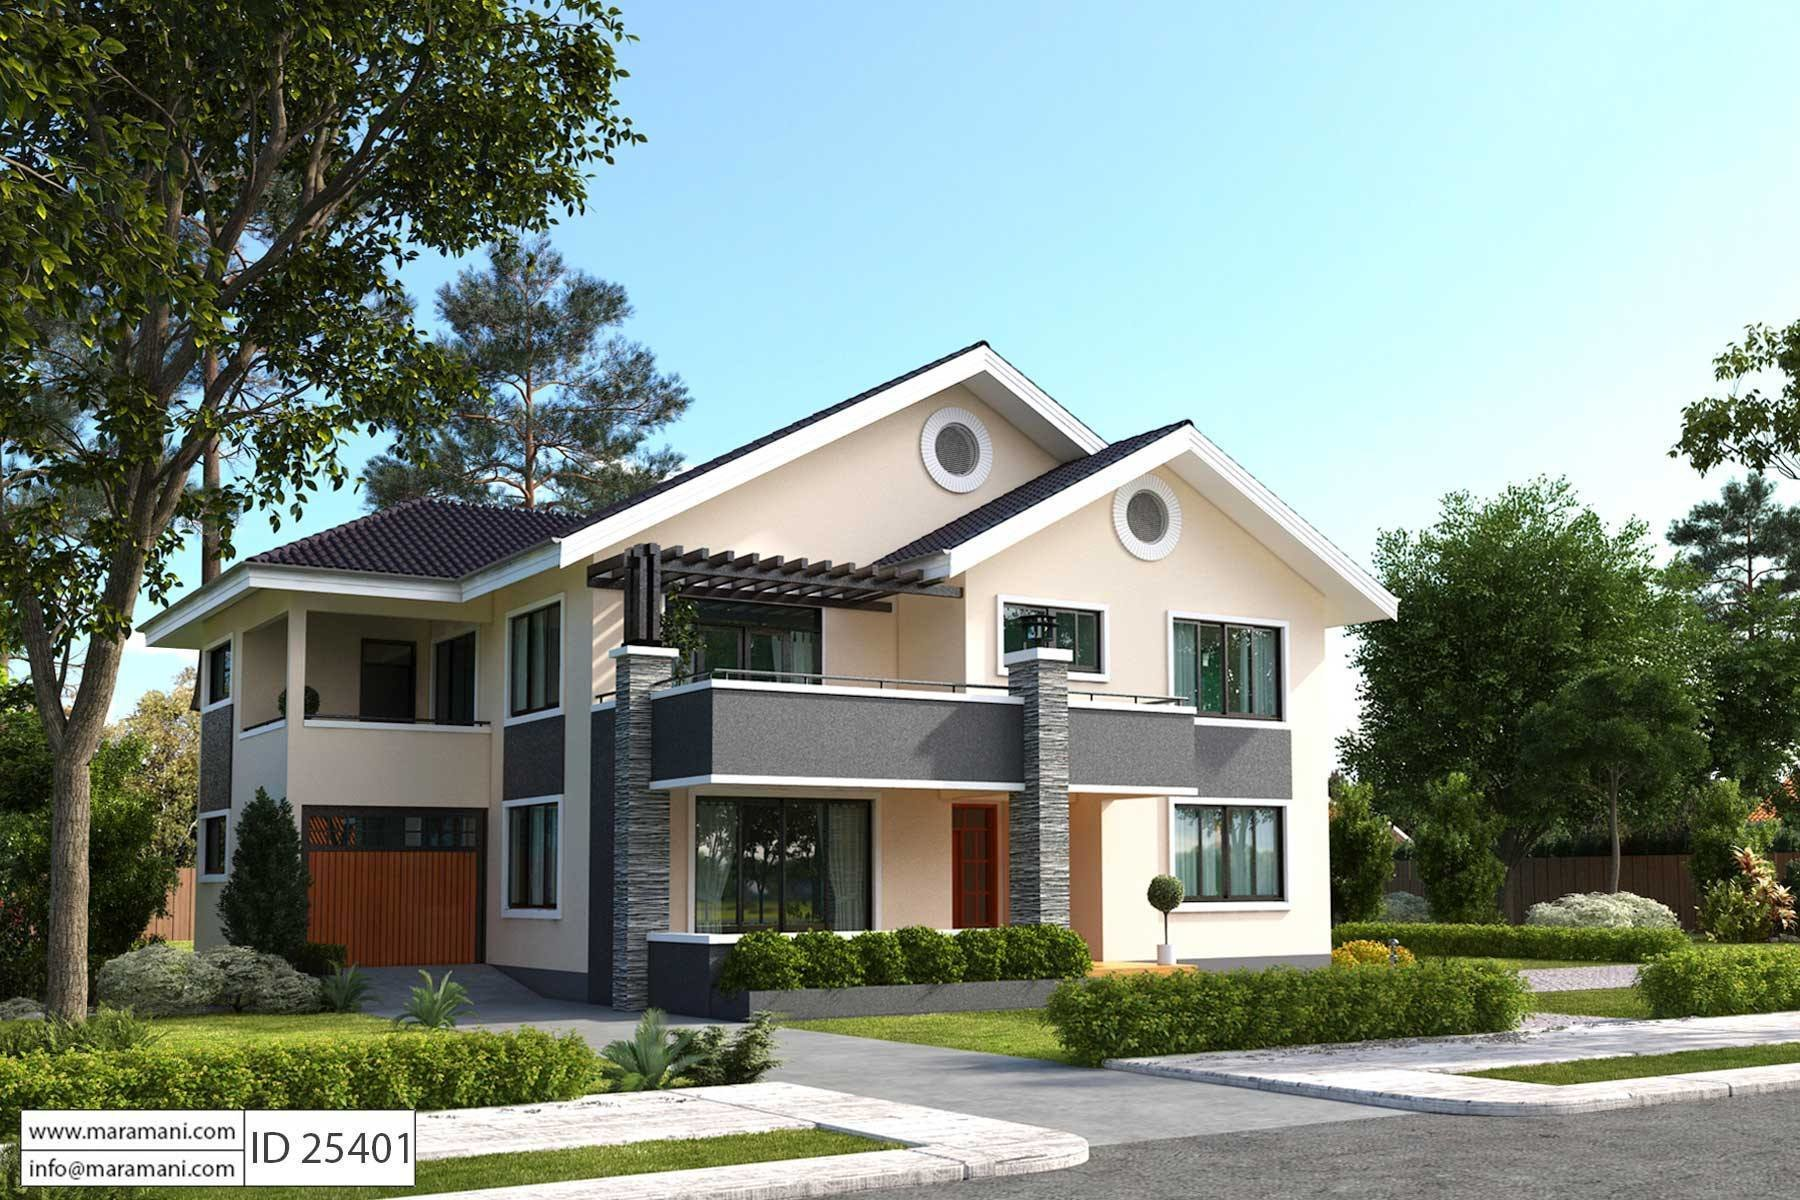 Best 5 Bedroom House Plan Id 25401 Floor Plans By Maramani With Pictures